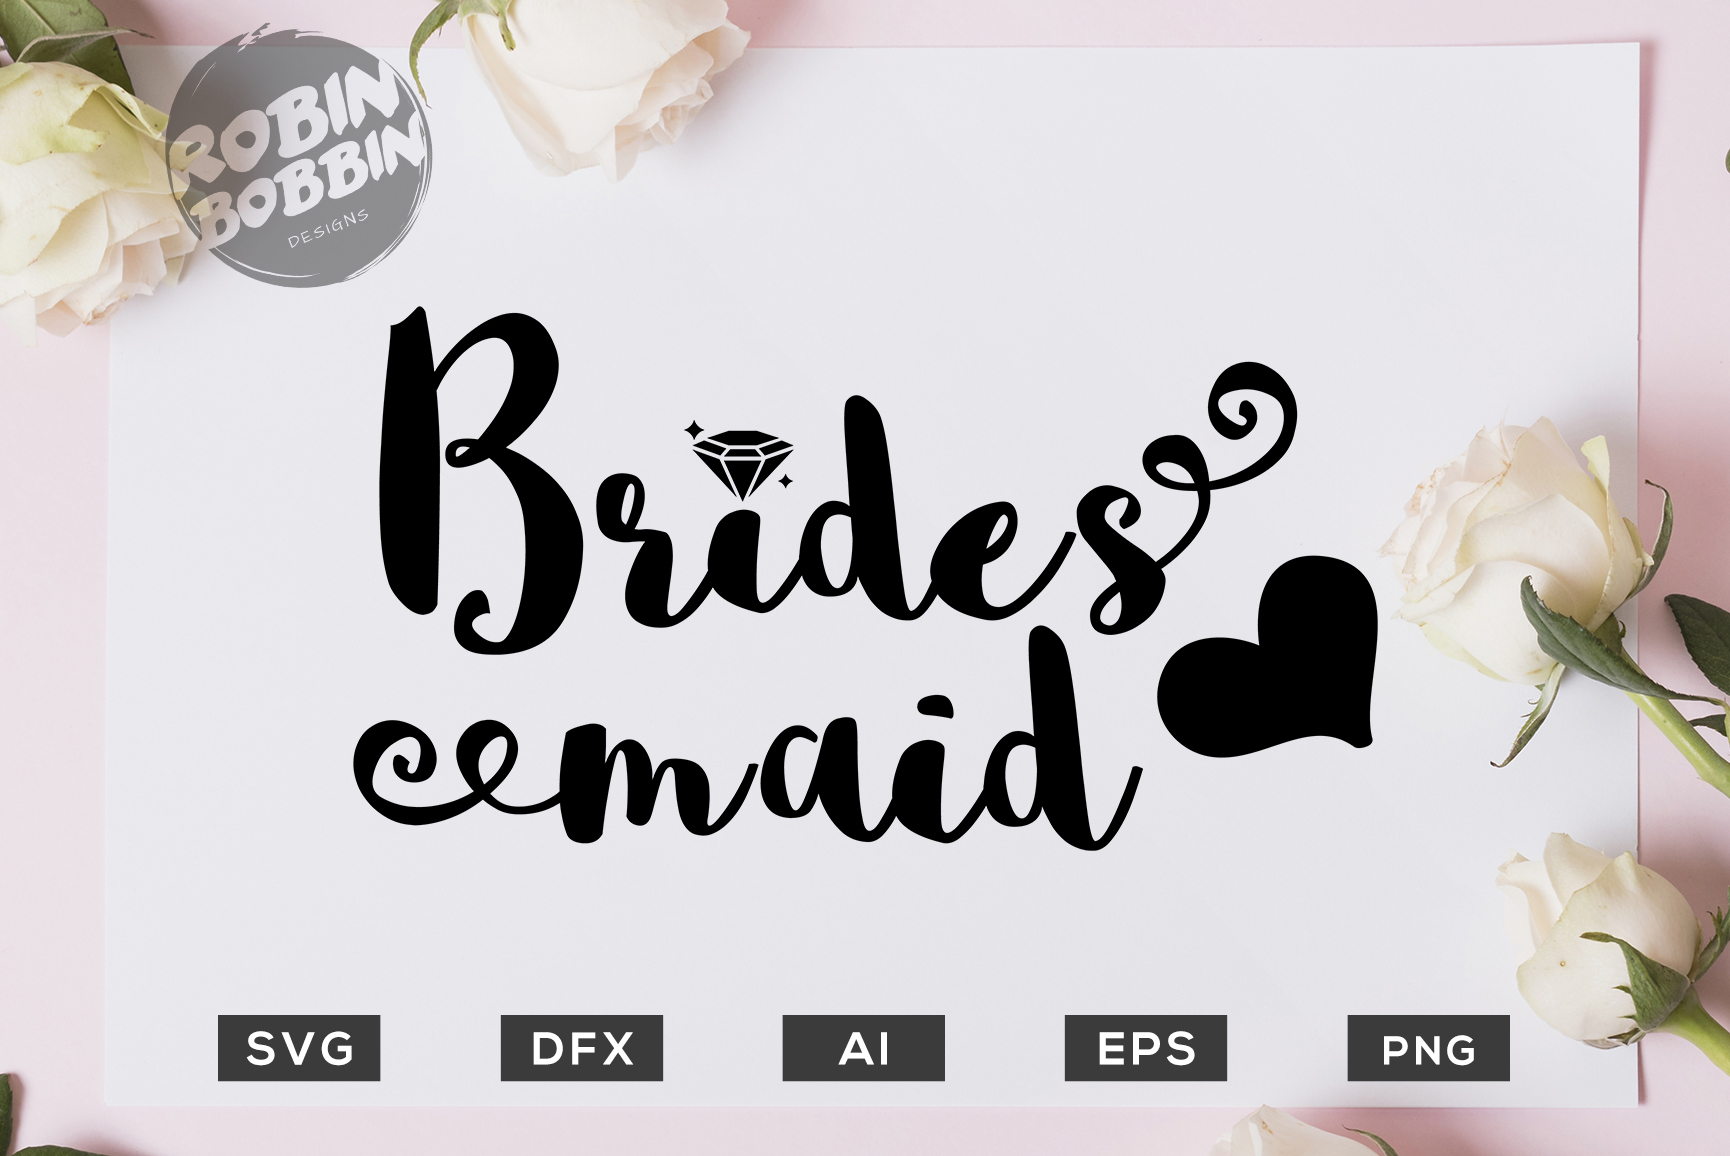 Brides Maid SVG File - Wedding SVG PNG EPS Files example image 1